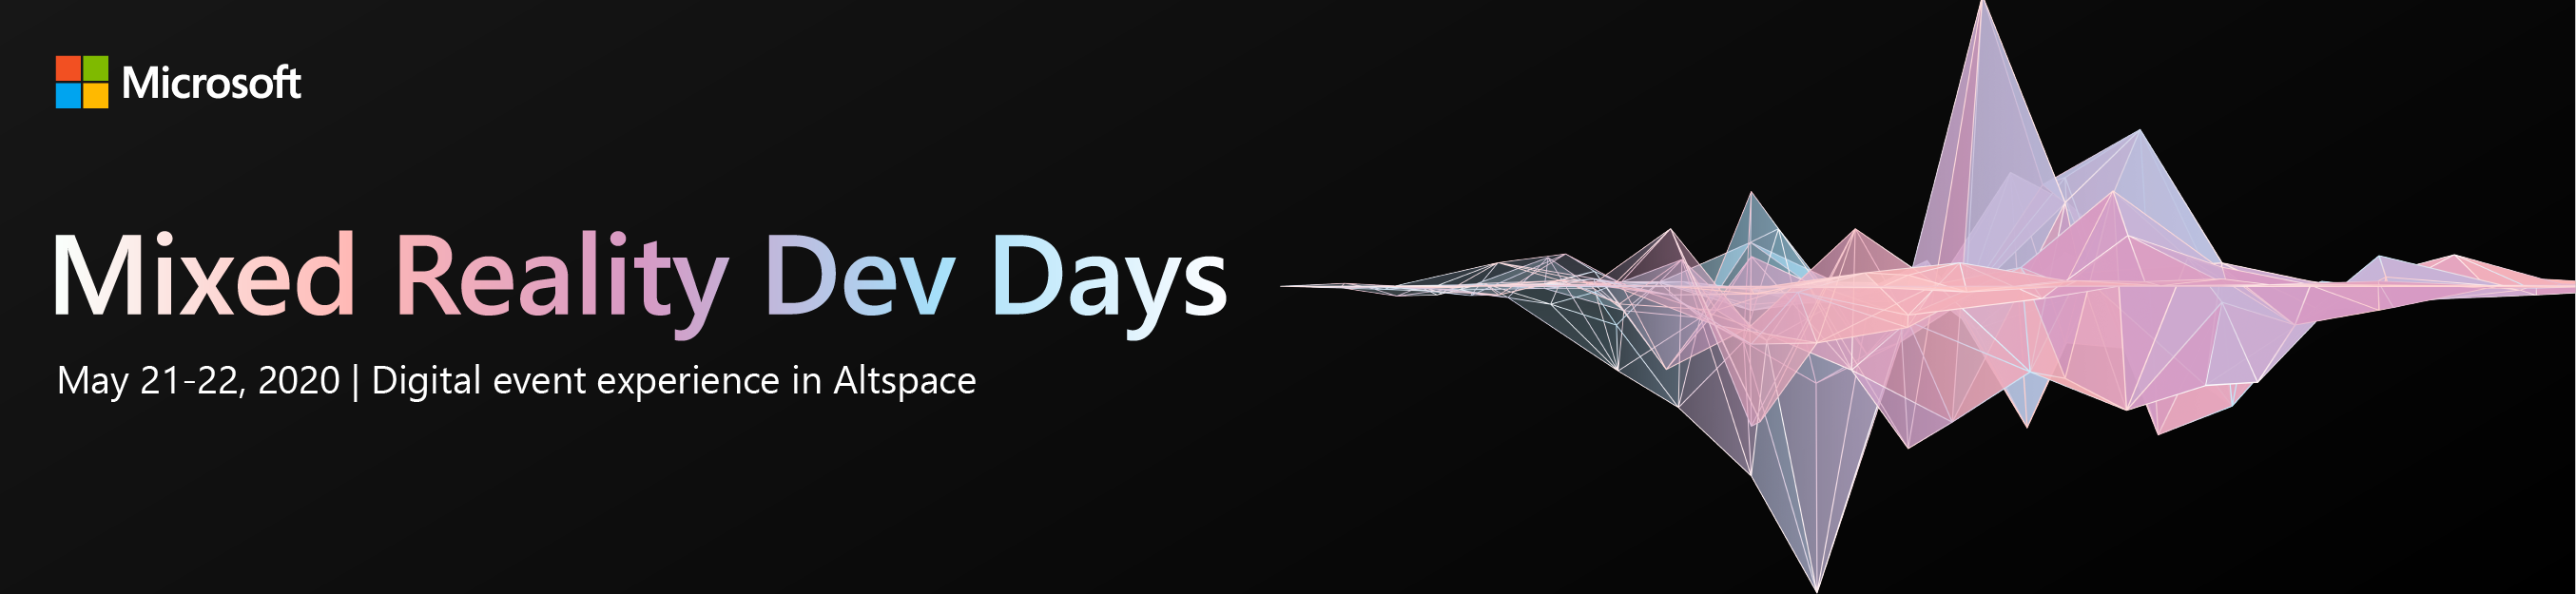 Mixed Reality Dev Days 2020